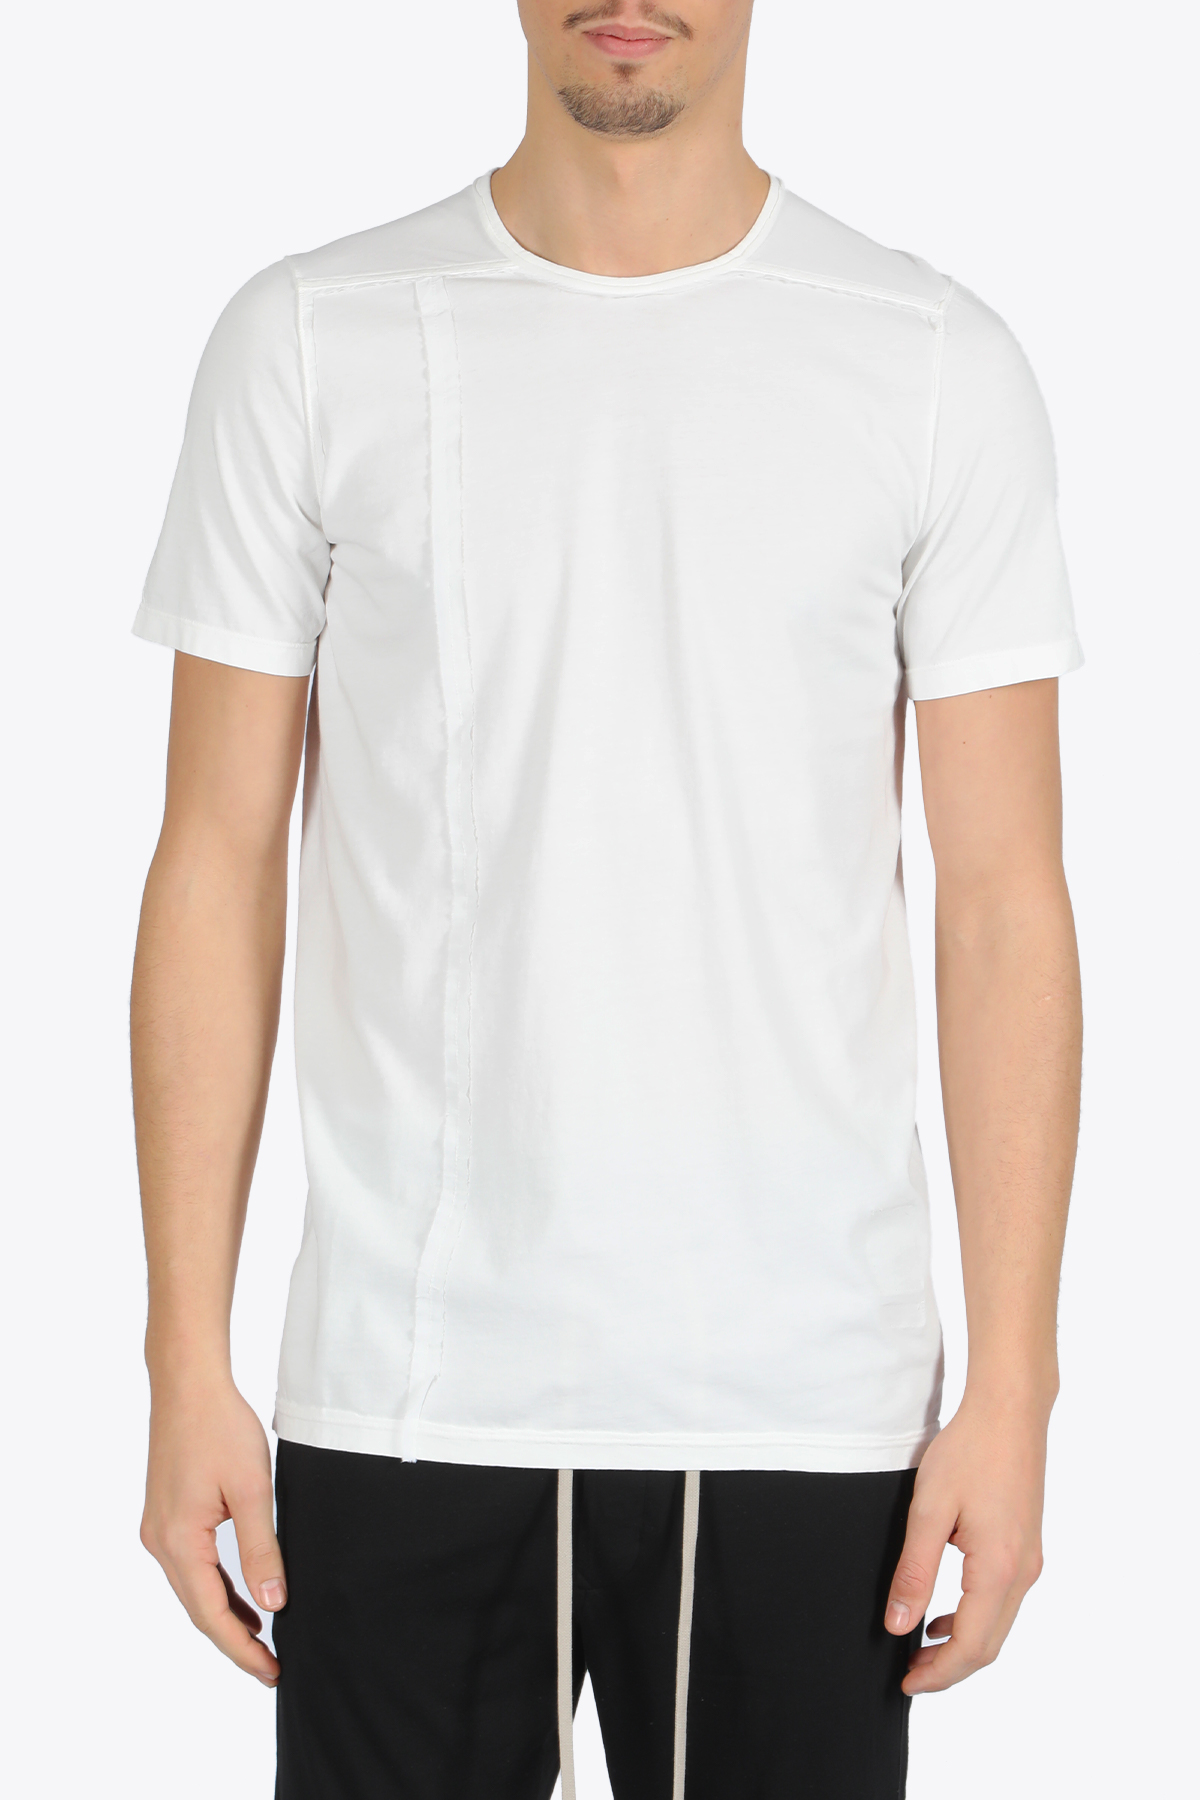 LEVEL TEE RICK OWENS-DRKSHDW | 8 | DU20S5250 RNND LEVEL TEE110